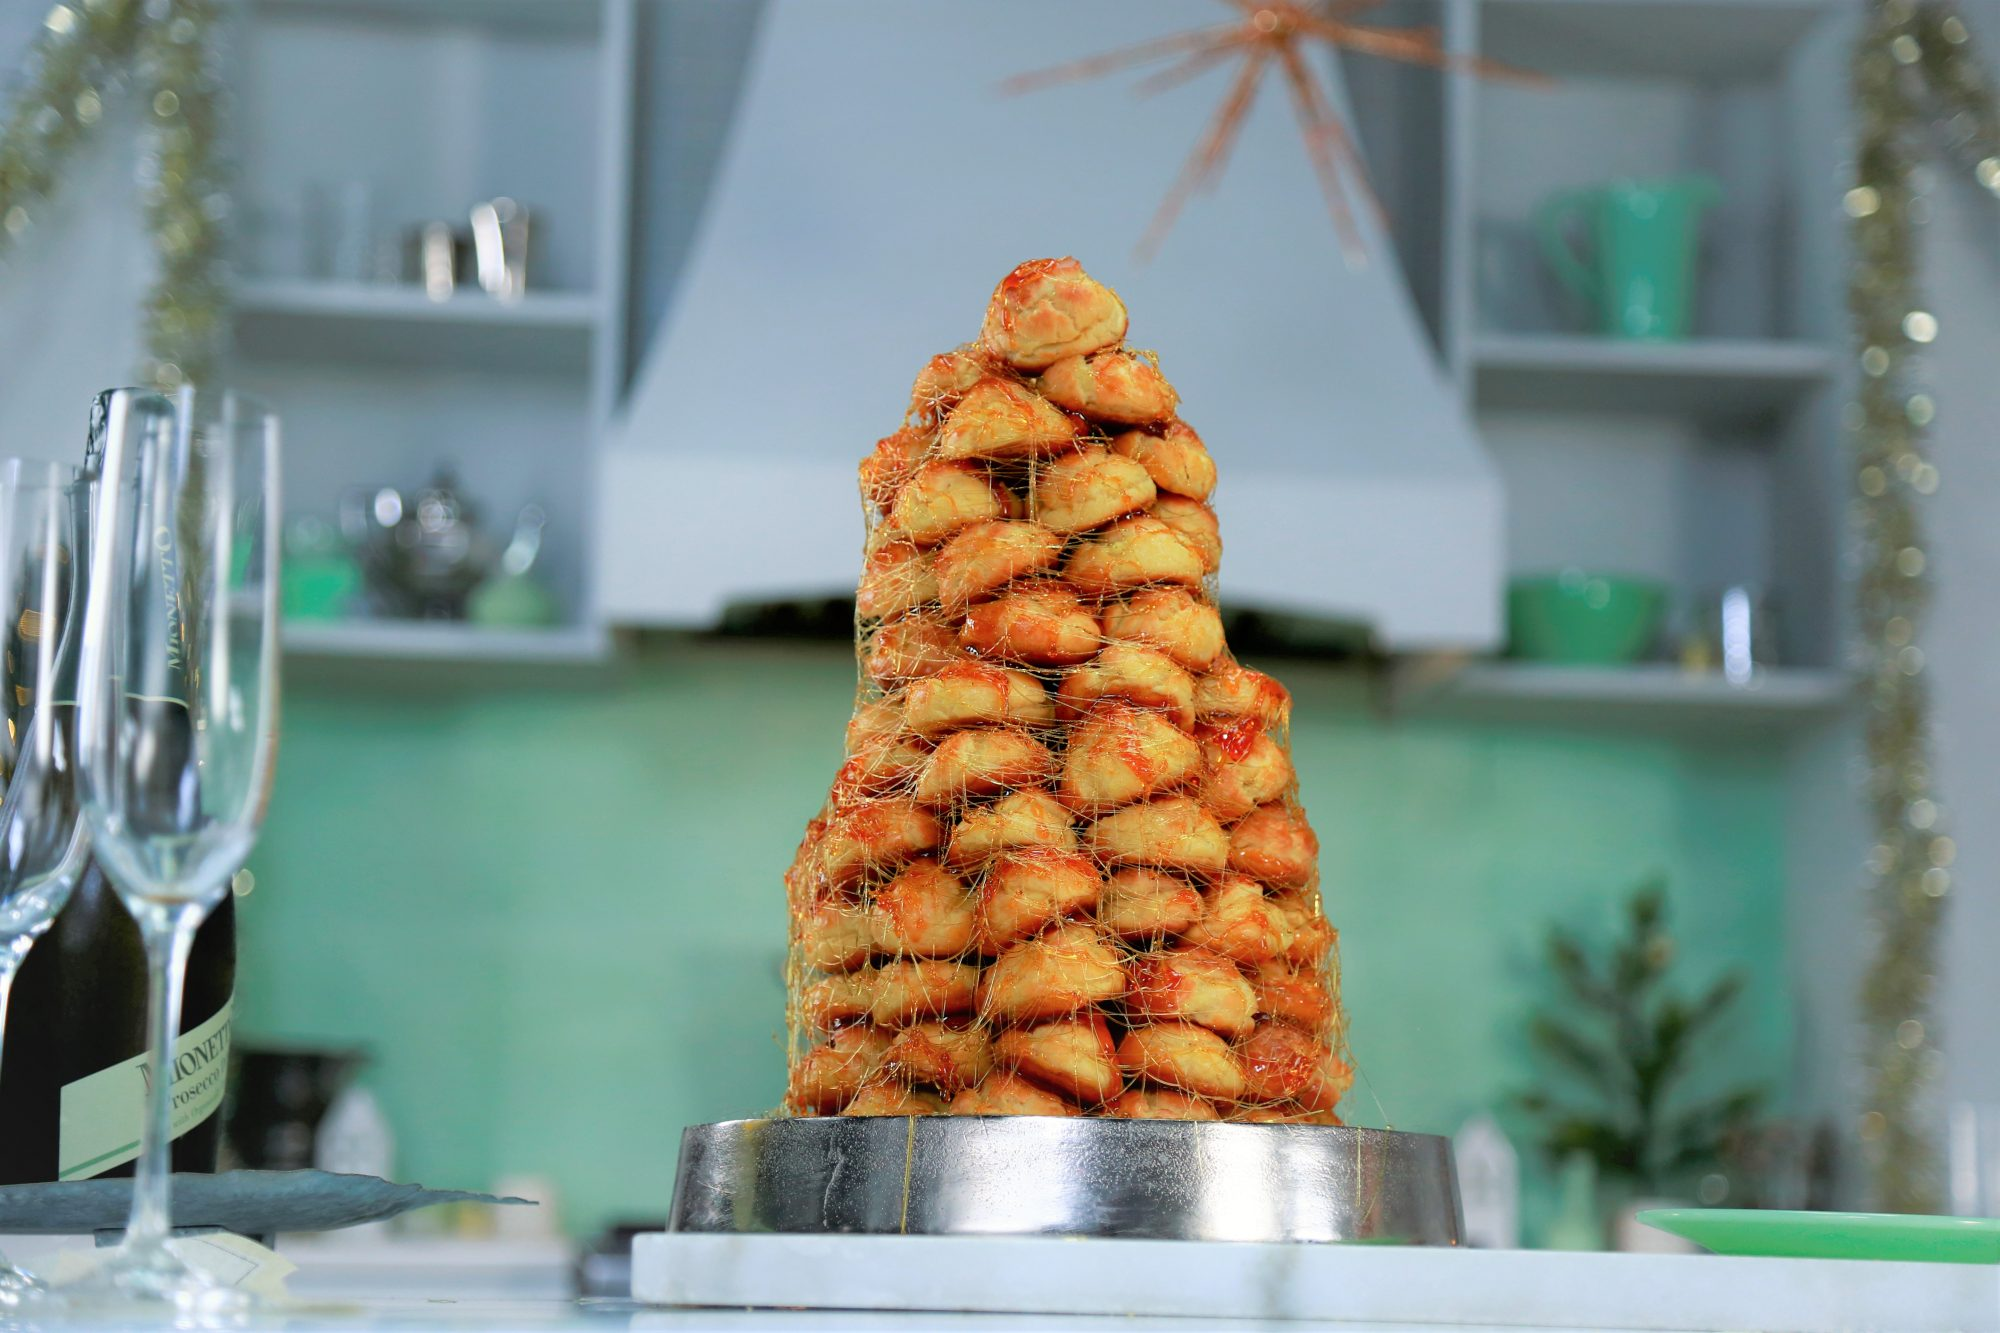 Tower of pastries with caramel drizzle